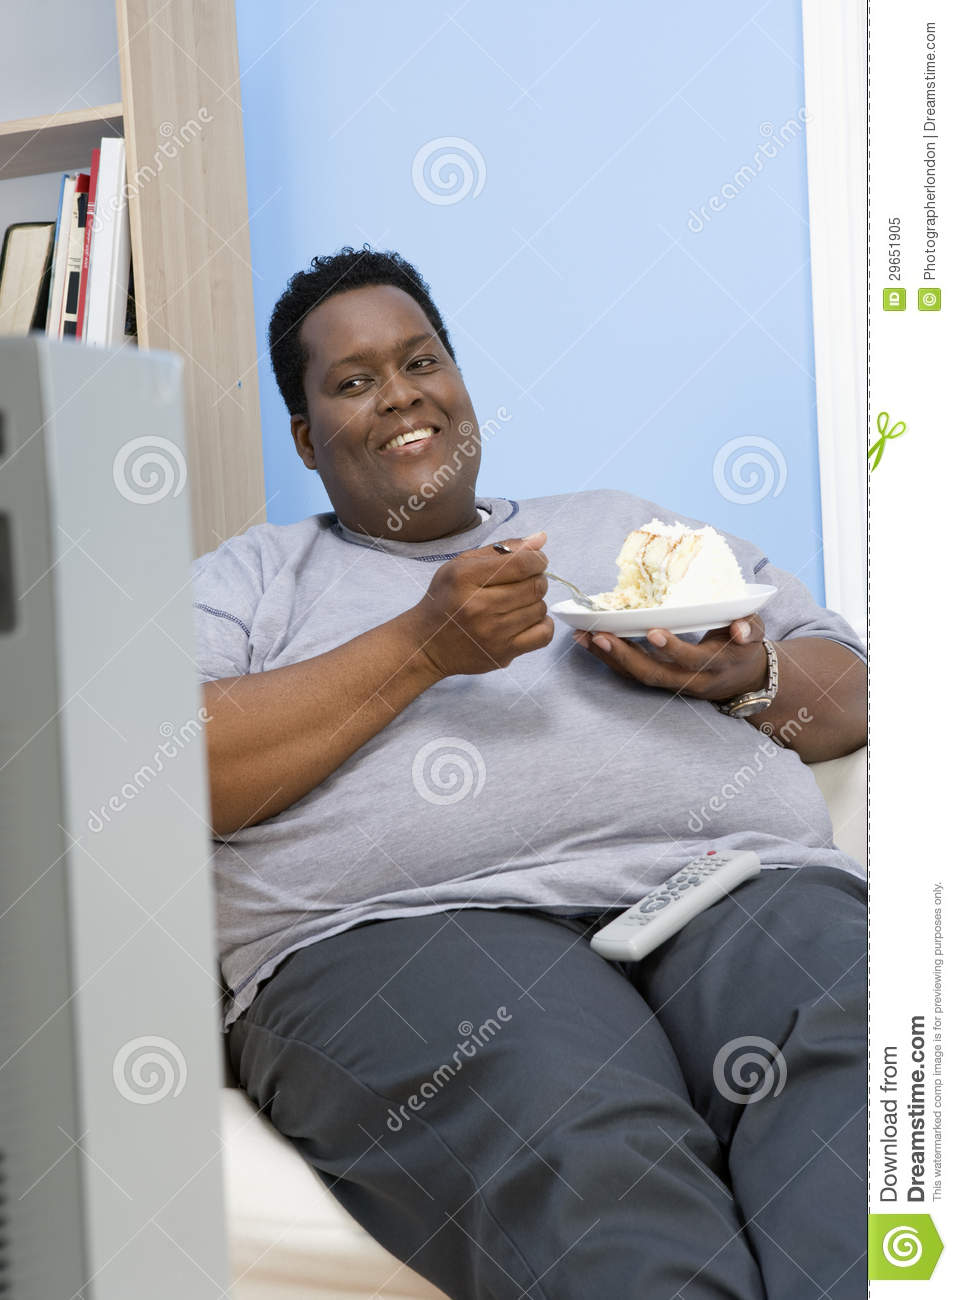 Obese Man Eating Pastry Royalty Free Stock Photo Image